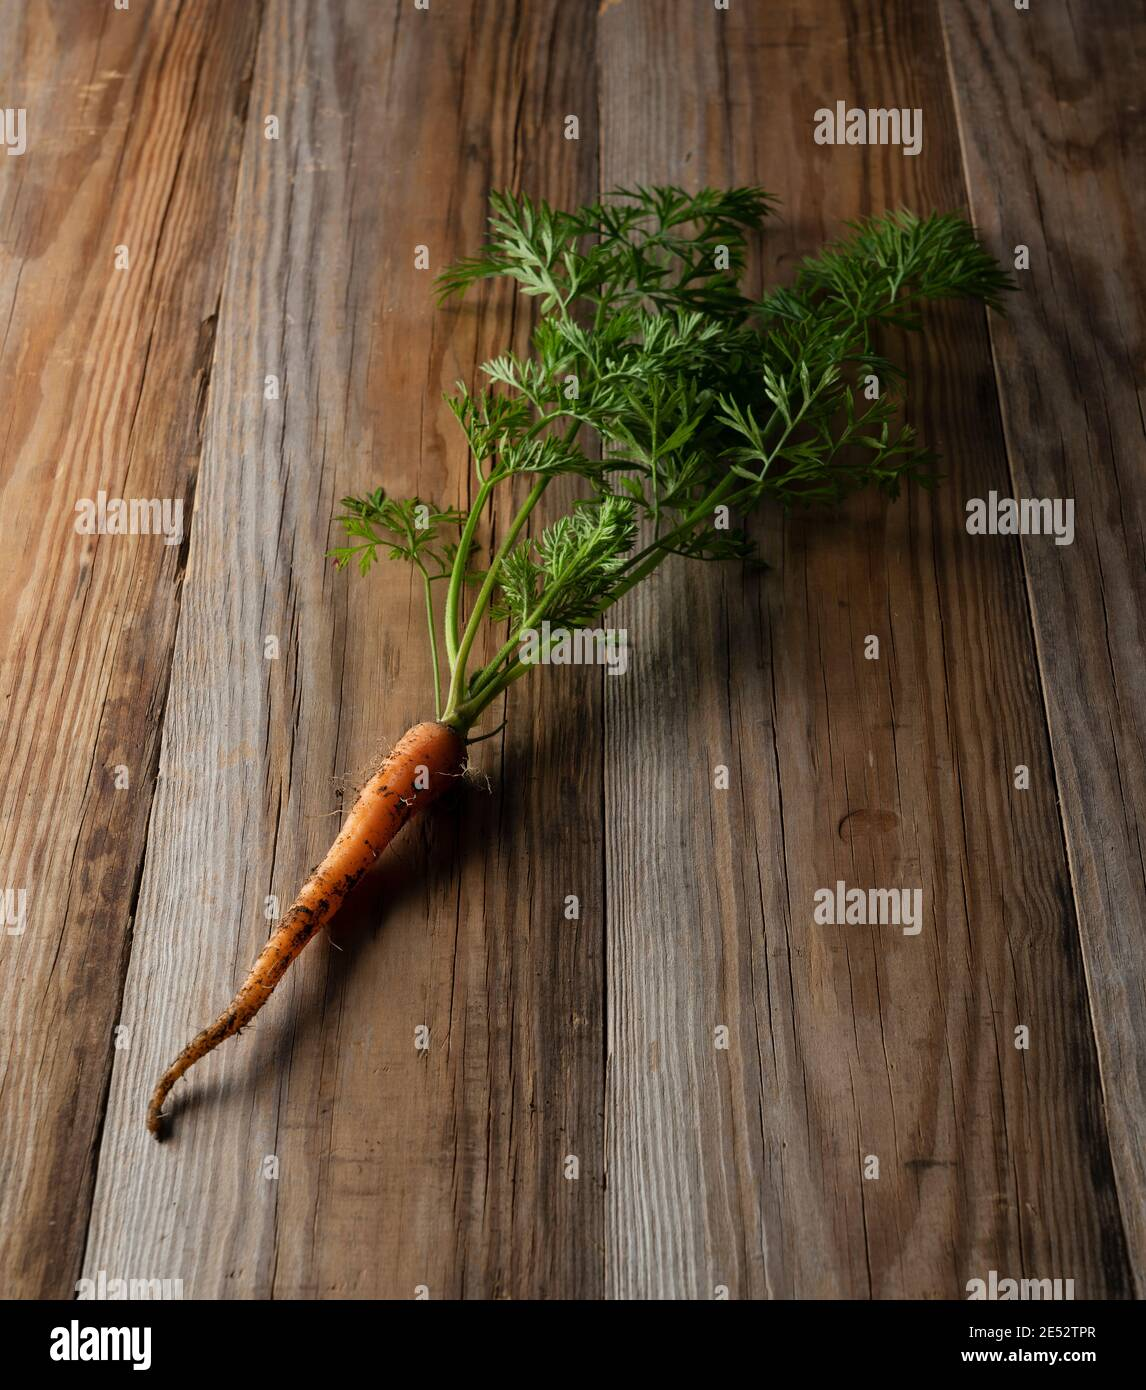 Freshly picked carrots placed in the wooden background Stock Photo